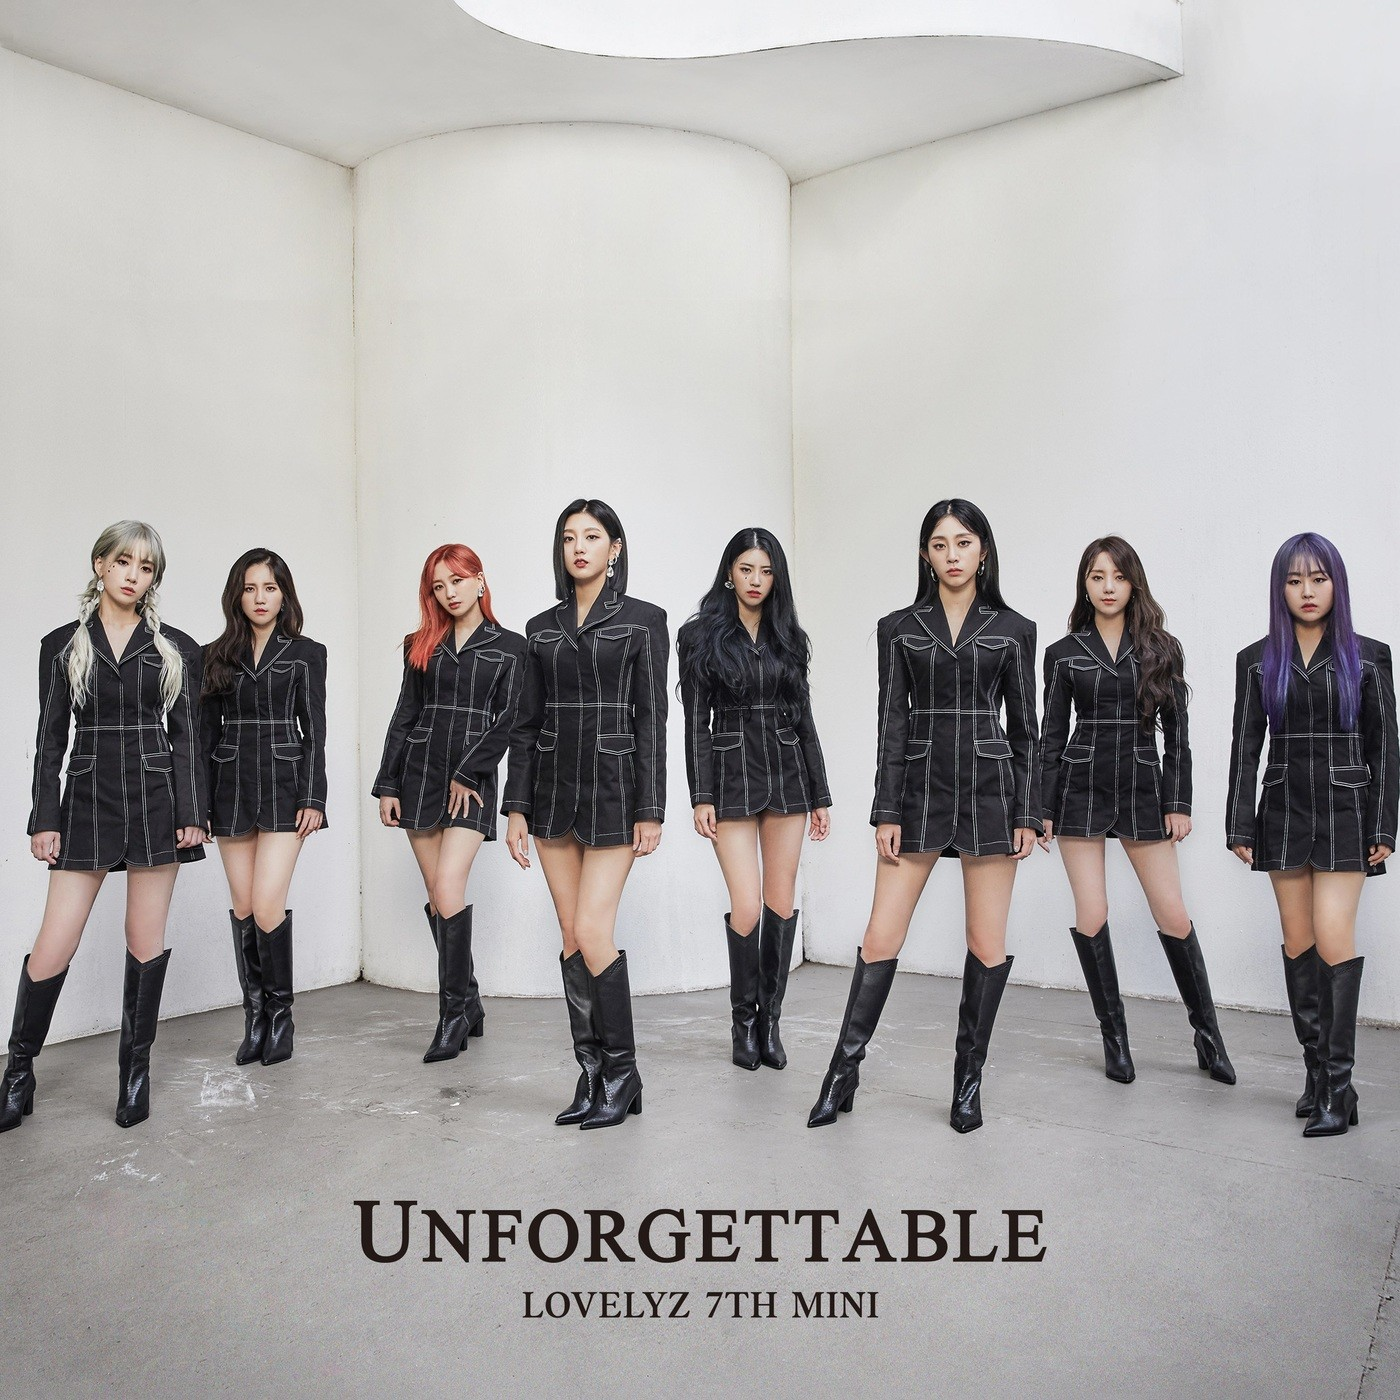 Lovelyz (러블리즈) – Lovelyz 7th Mini Album [Unforgettable] [FLAC + MP3 320 / WEB] [2020.09.01]